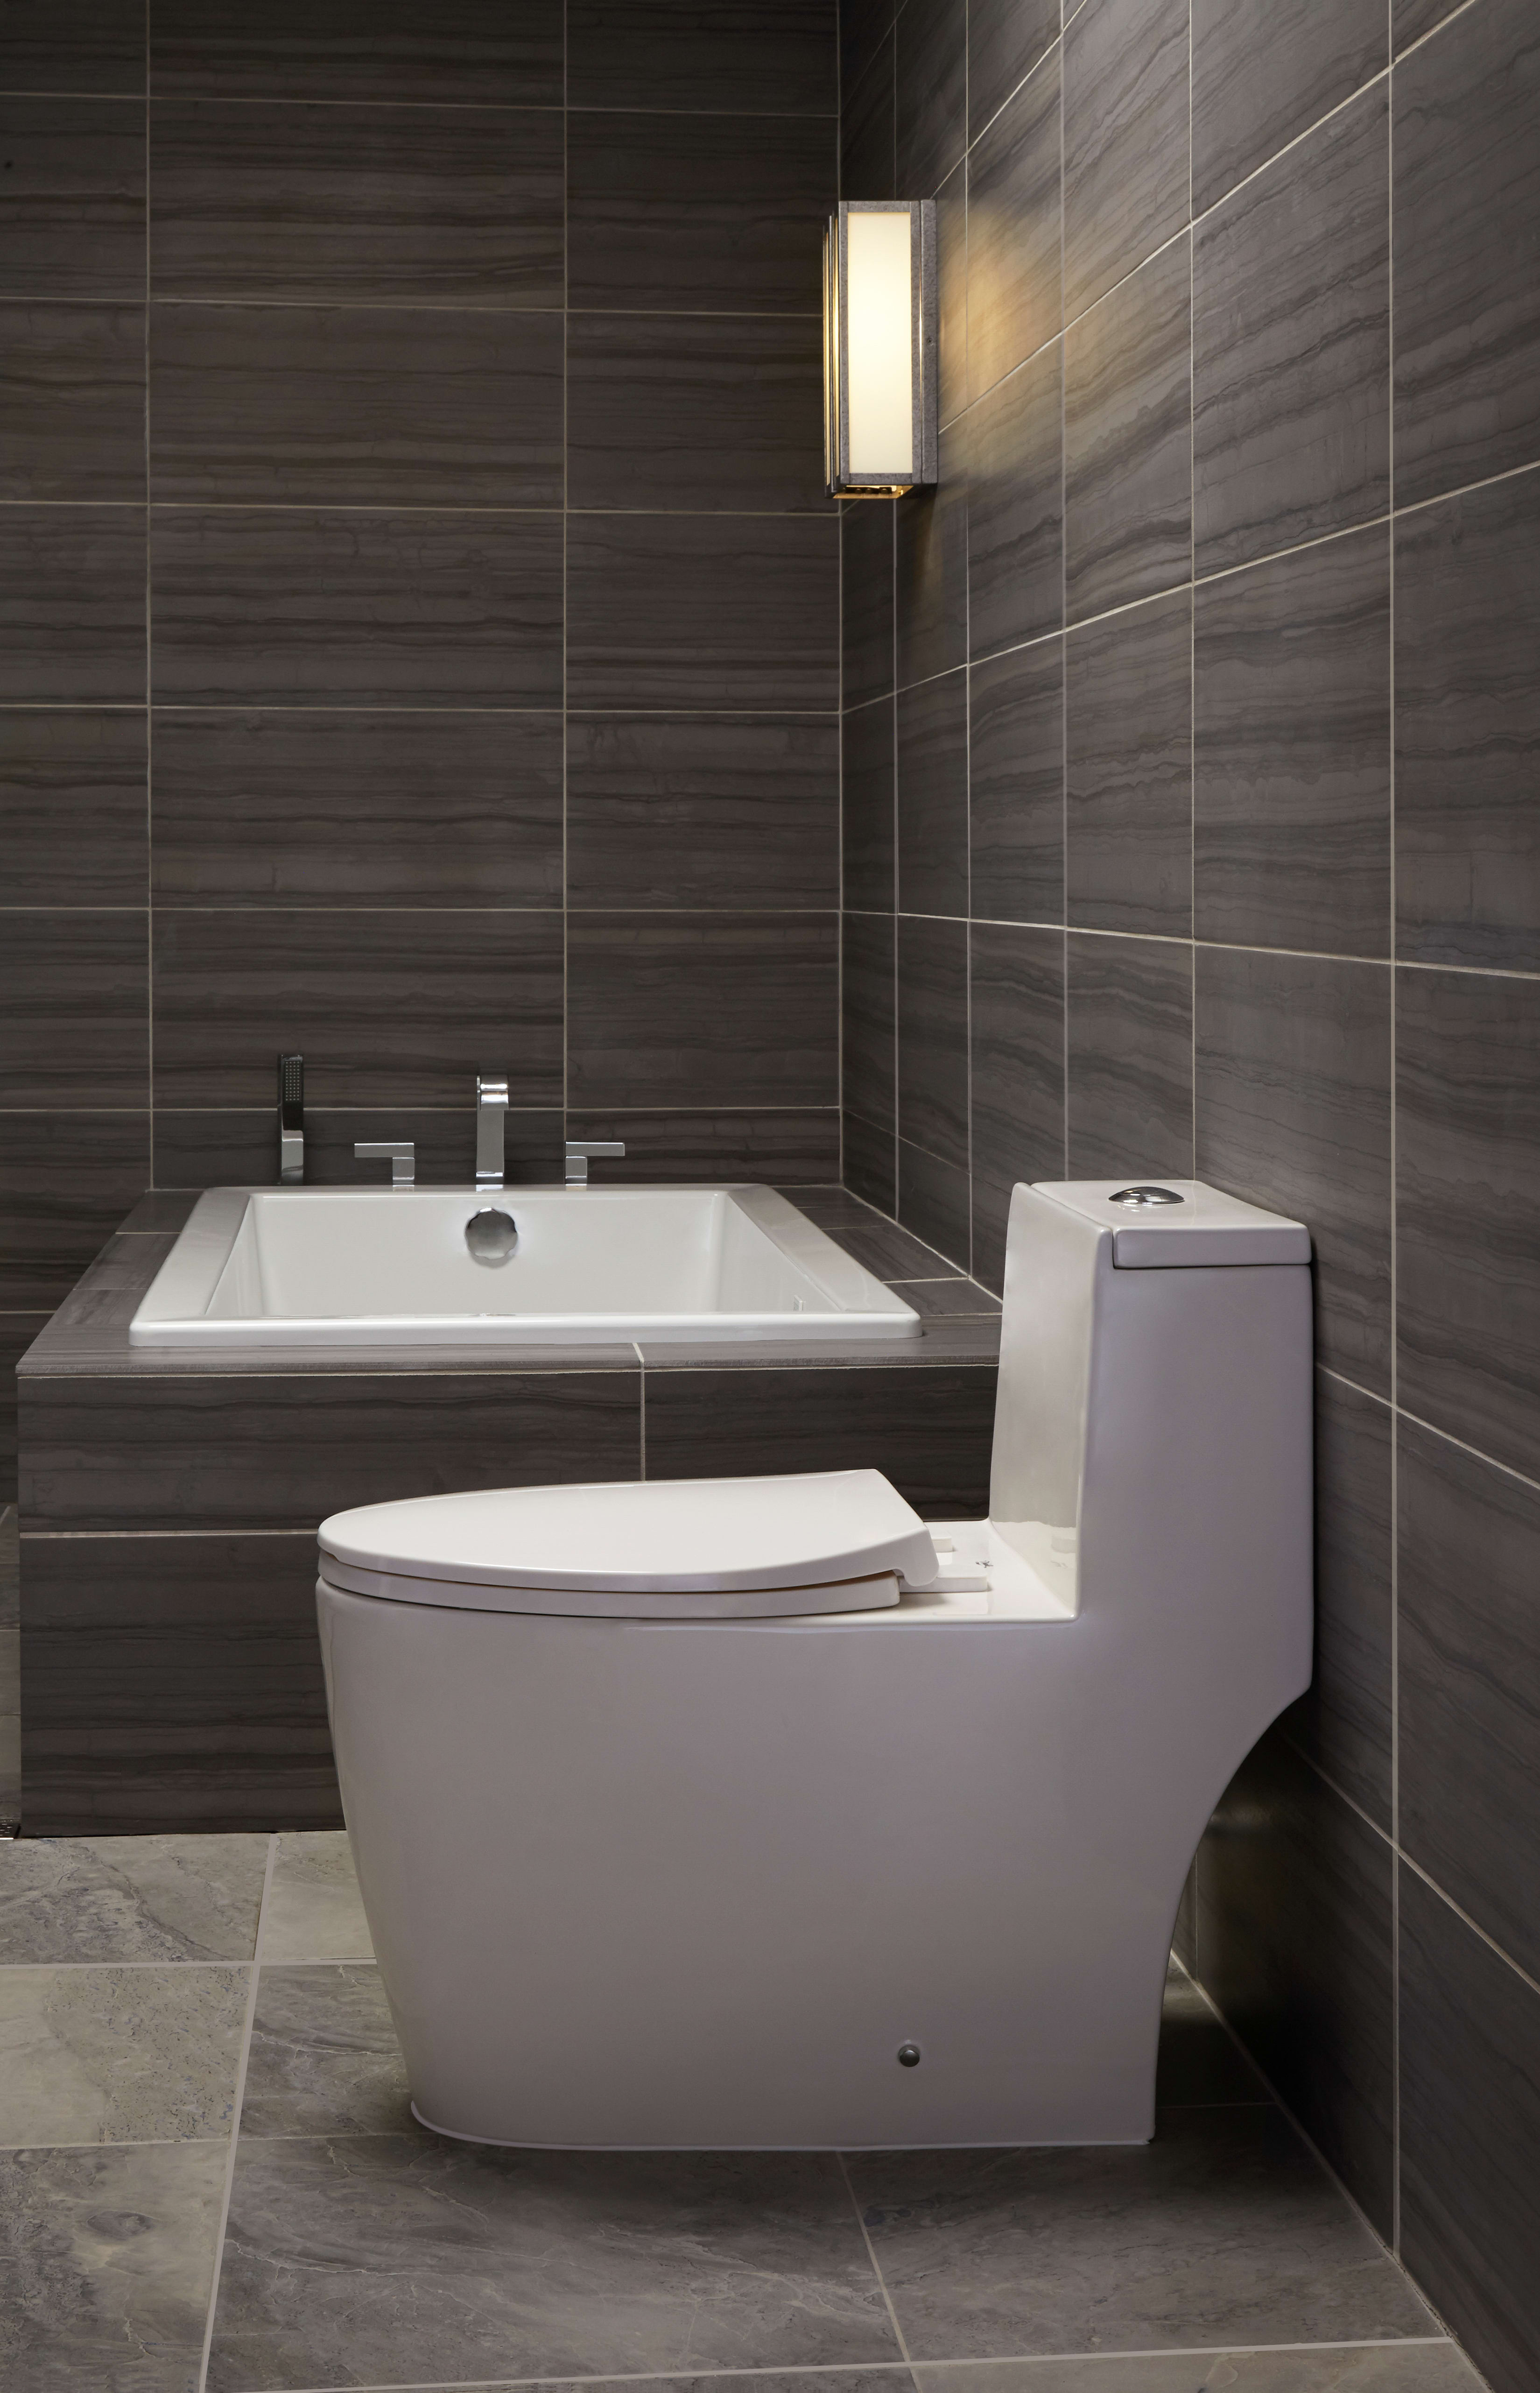 best bathroom tub faucets sinks ferguson faucet kitchen com dulichdaiphong of mirabelle about tubs perfect